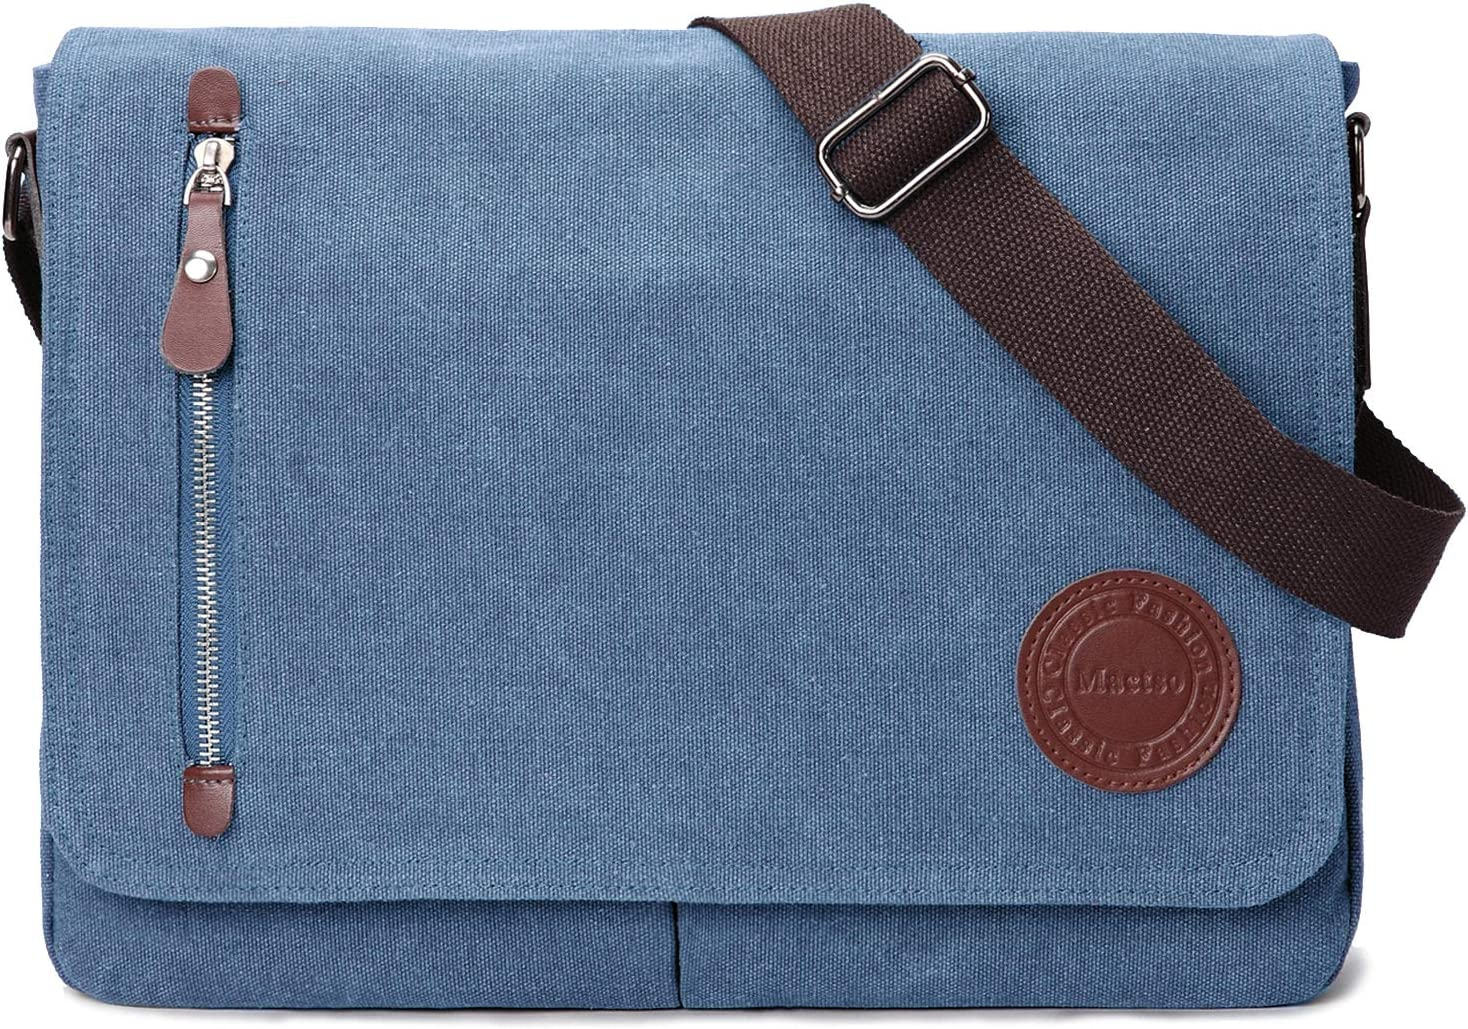 "Vintage Canvas Satchel Messenger Bag for Men Women,Travel Shoulder bag 13.5"" Laptop Bags Bookbag (Blue)"